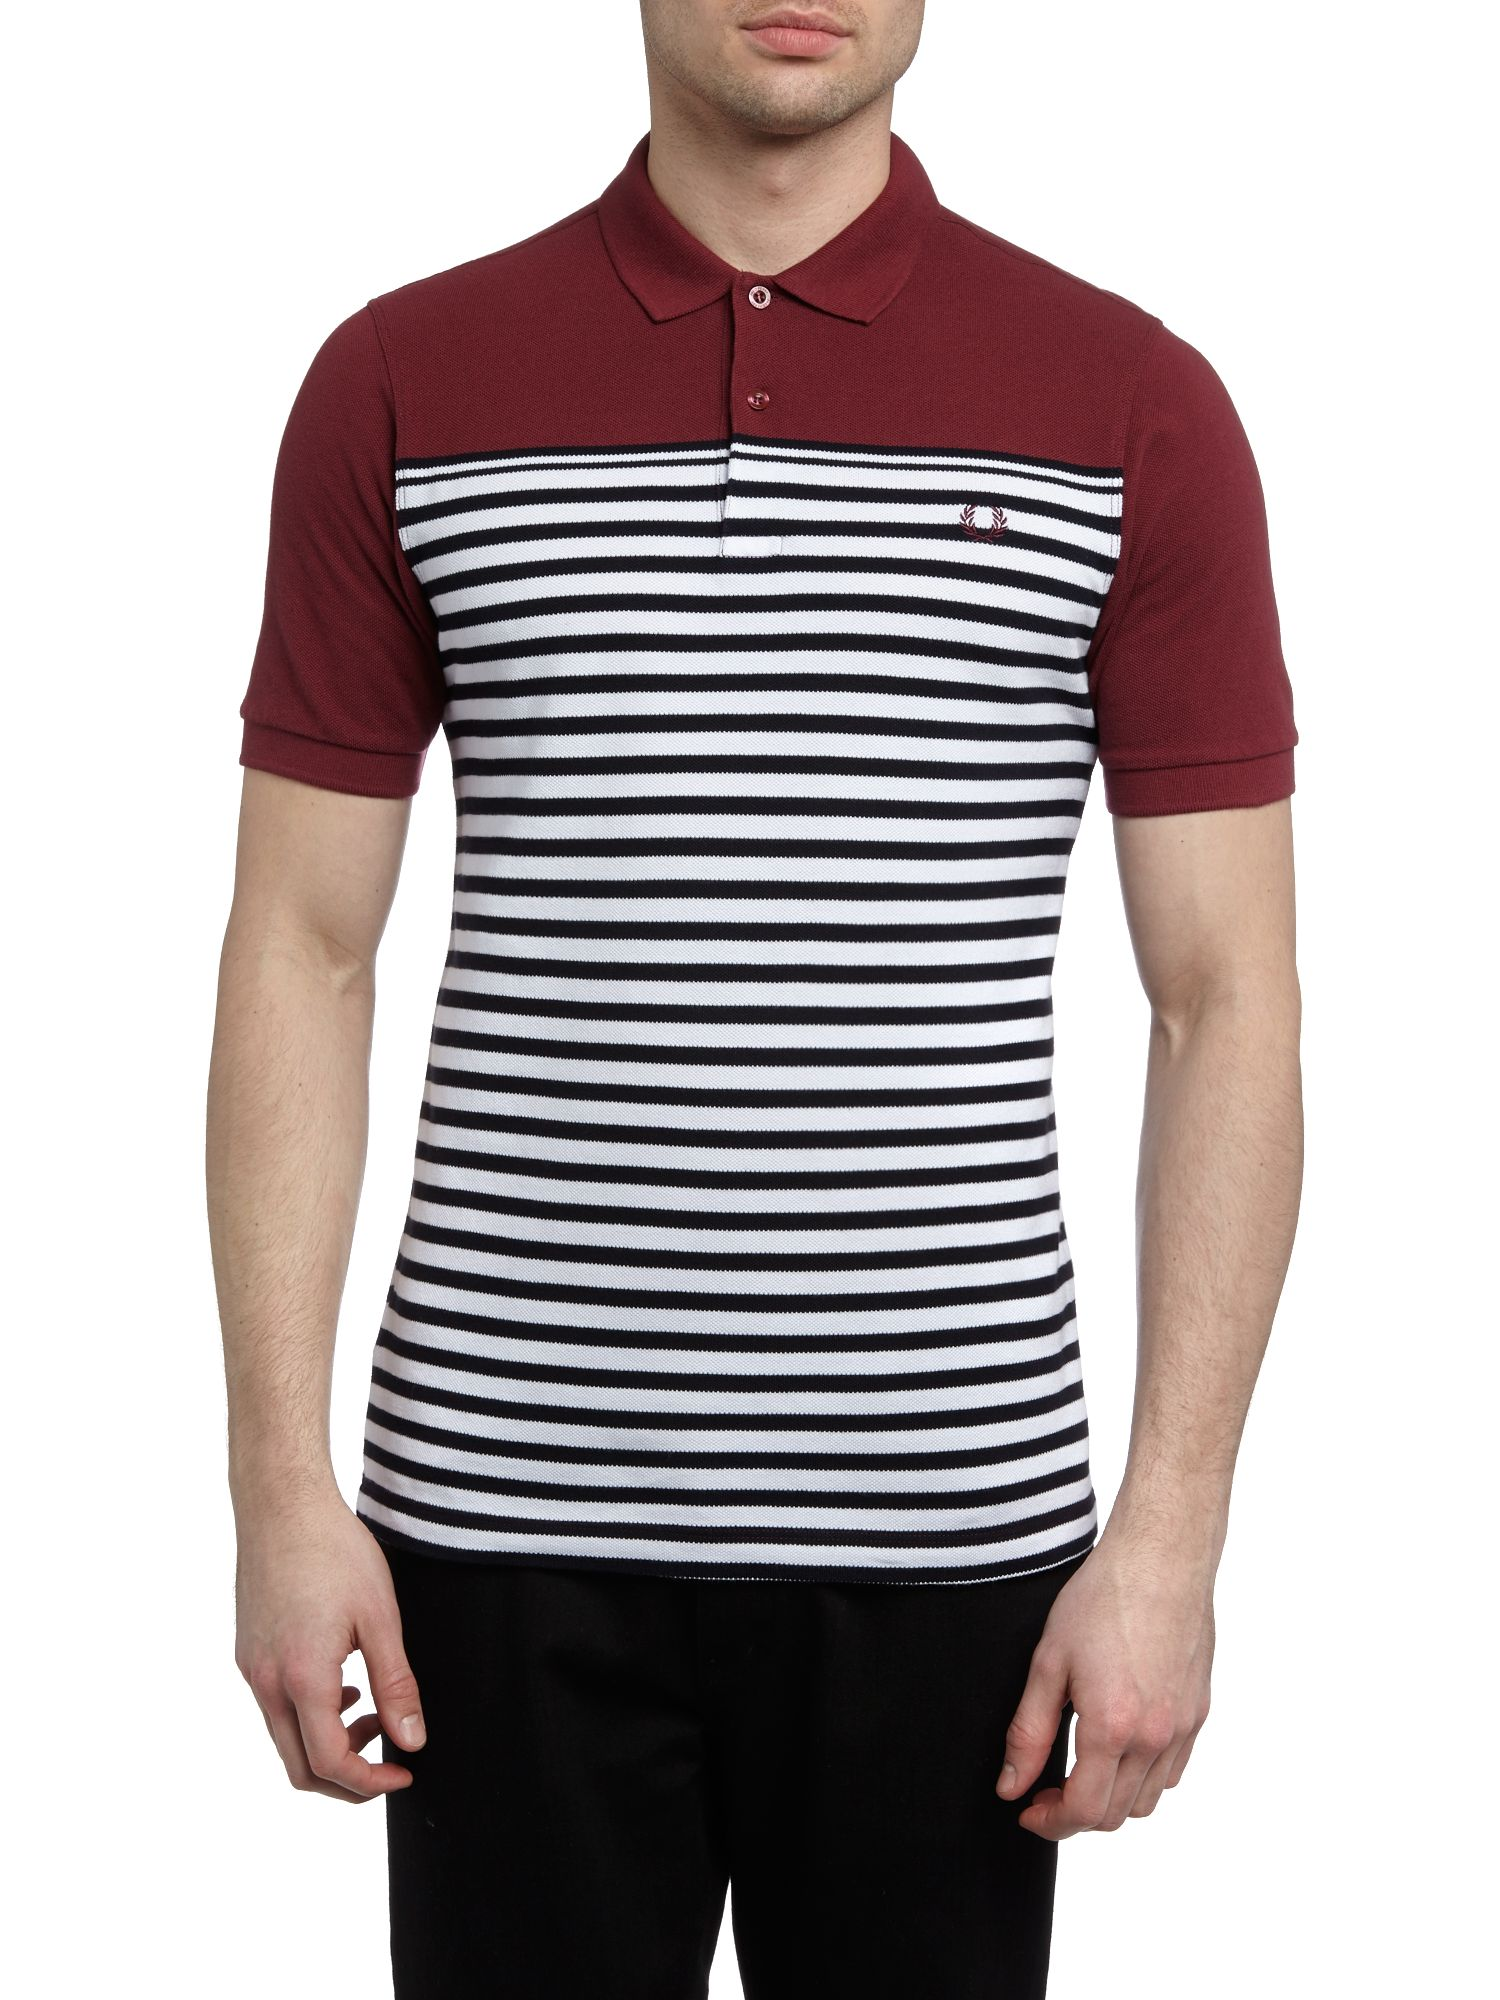 Block & stripe polo shirt